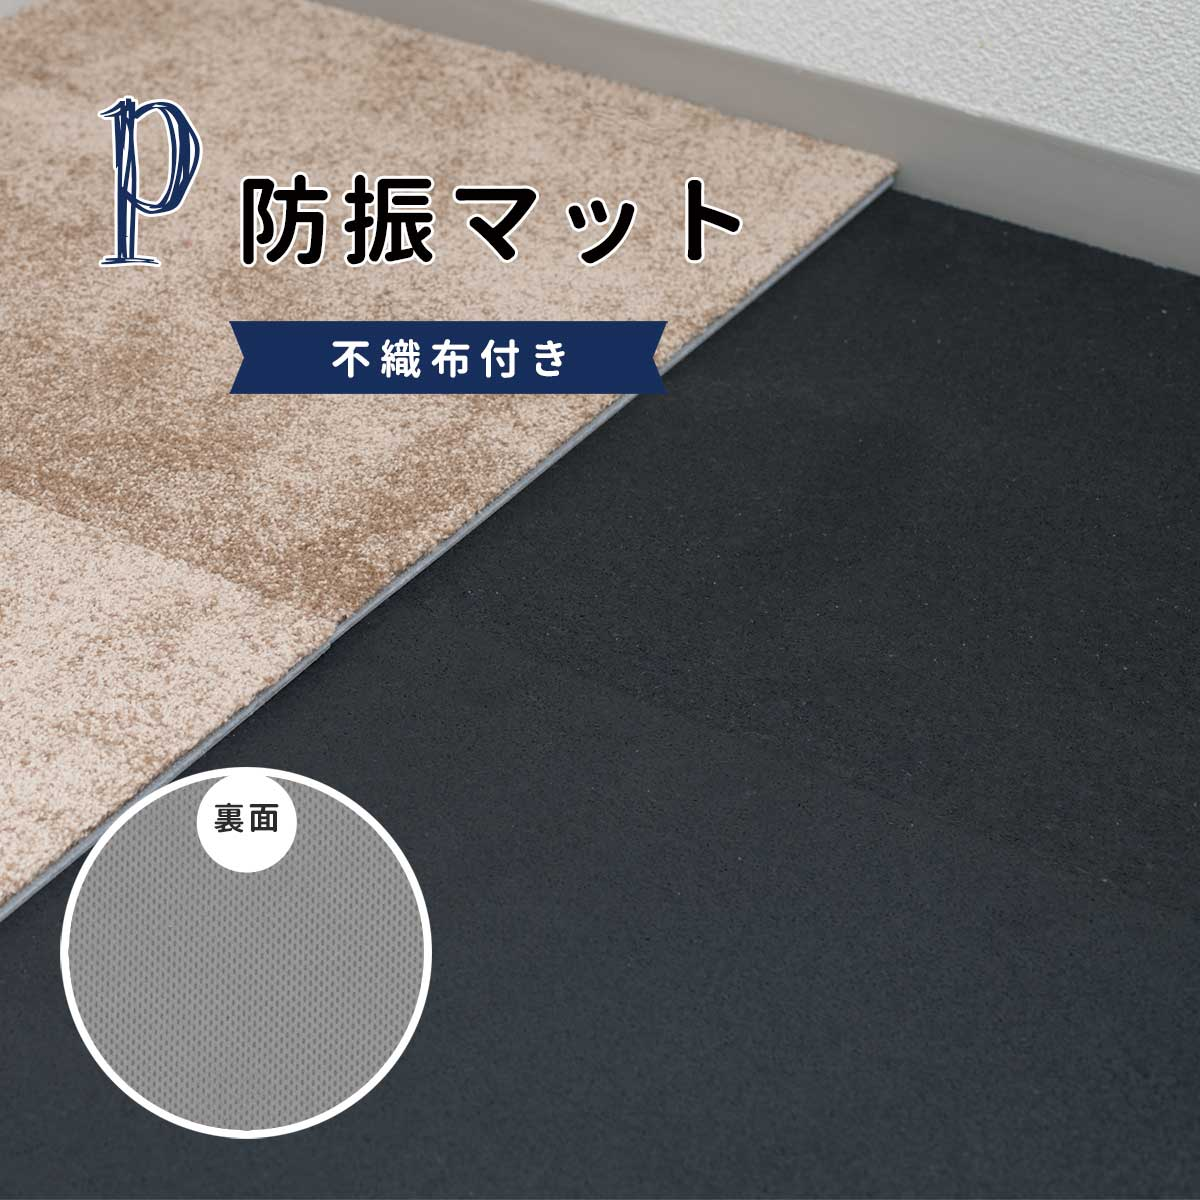 P防振マット不織布付き